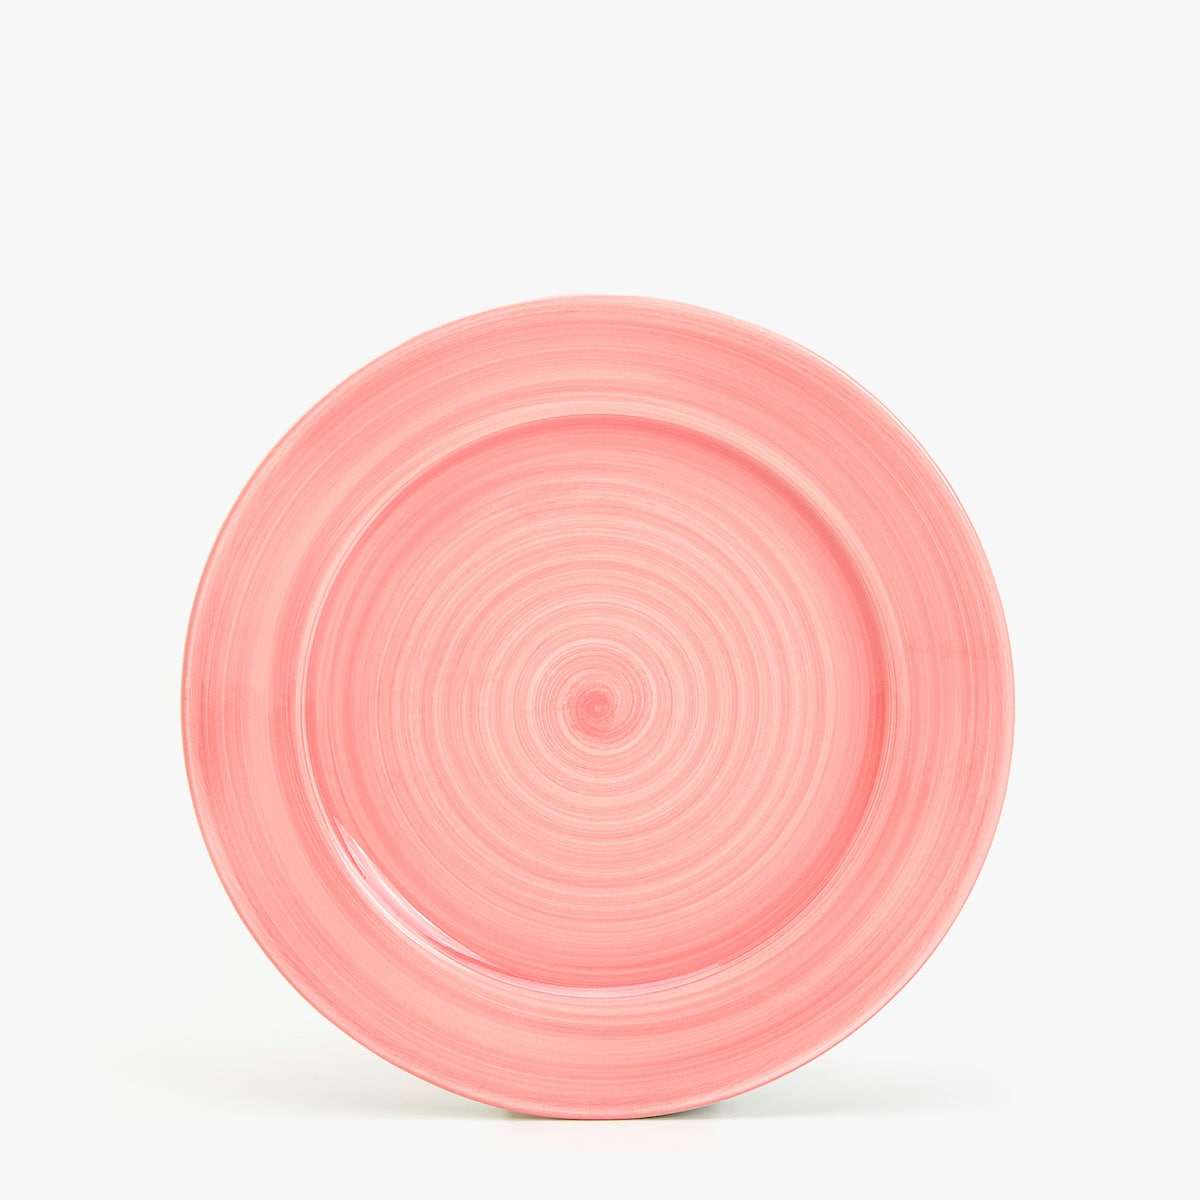 PINK EARTHENWARE TABLEWARE WITH SPIRAL DESIGN